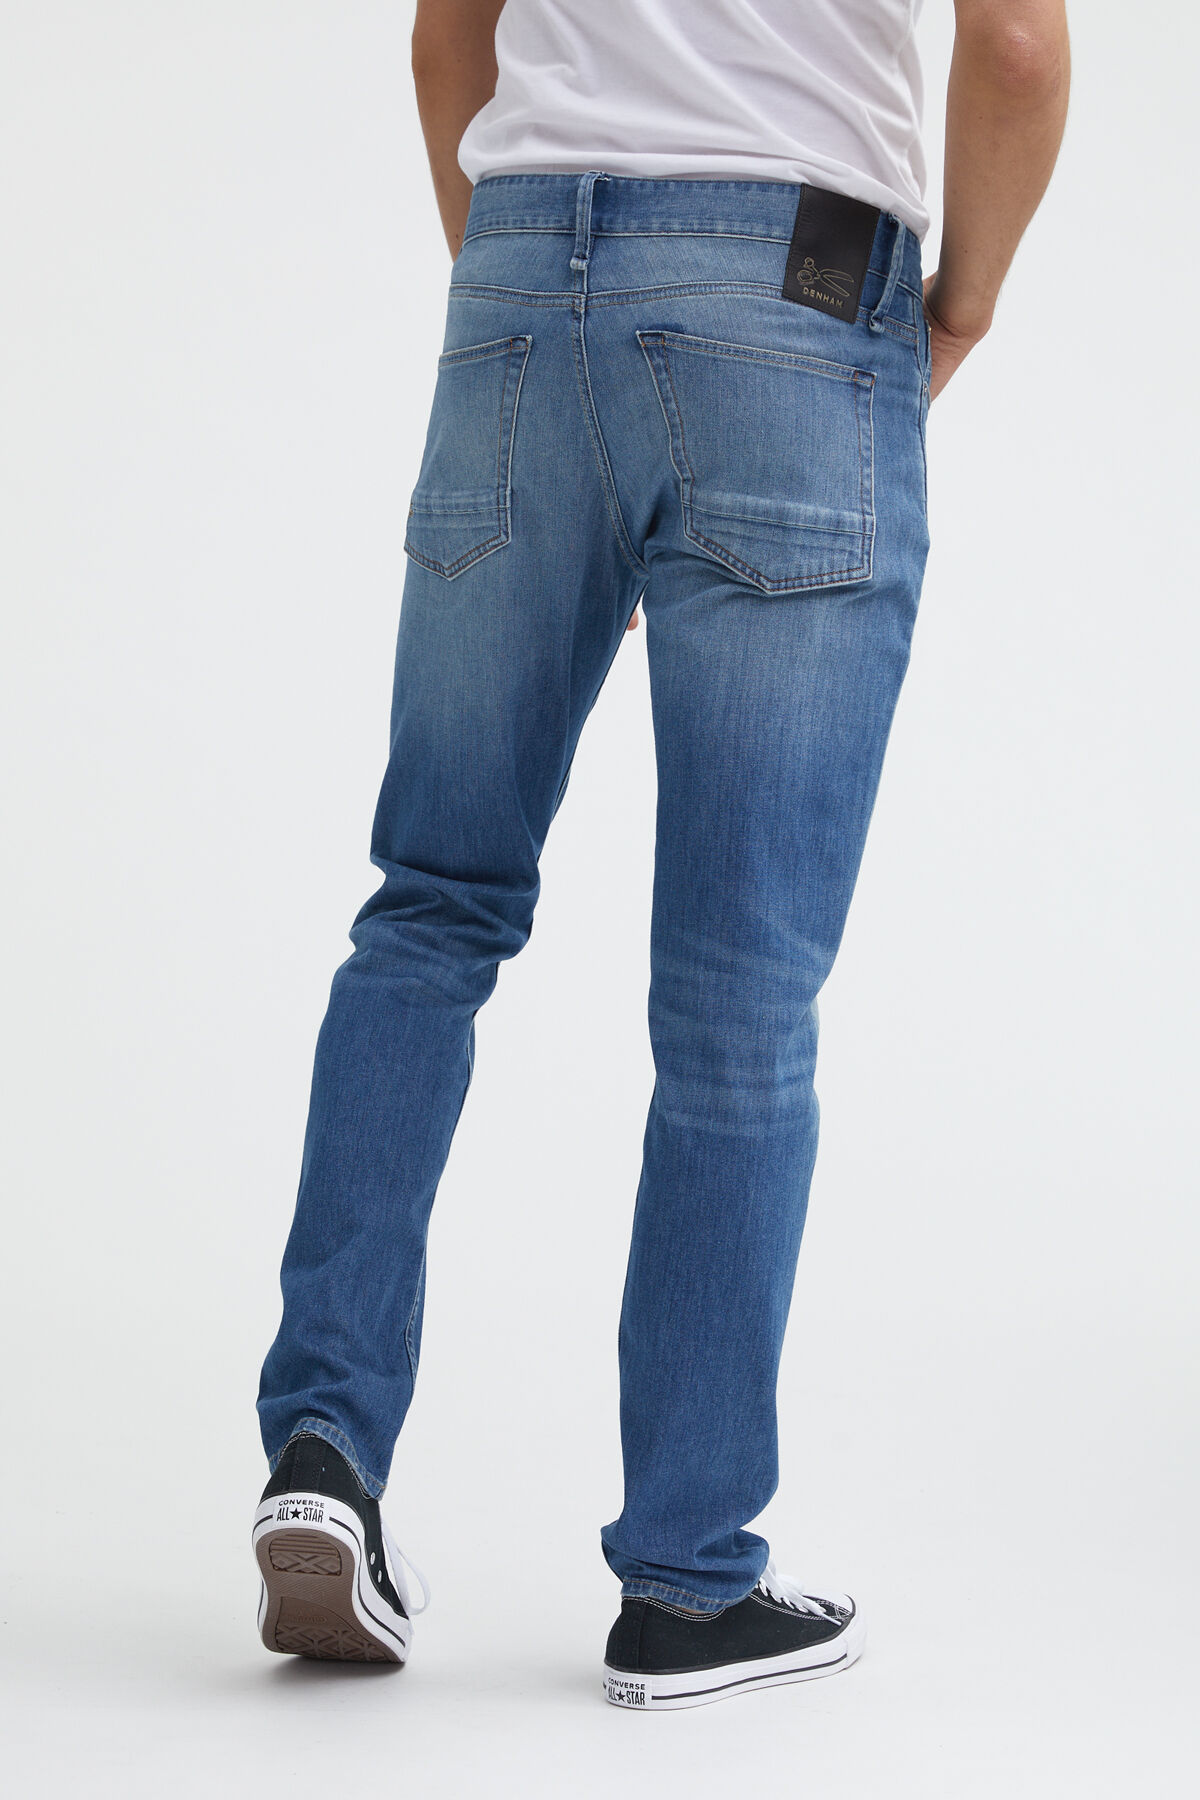 RAZOR Lightweight Denim - Slim Fit